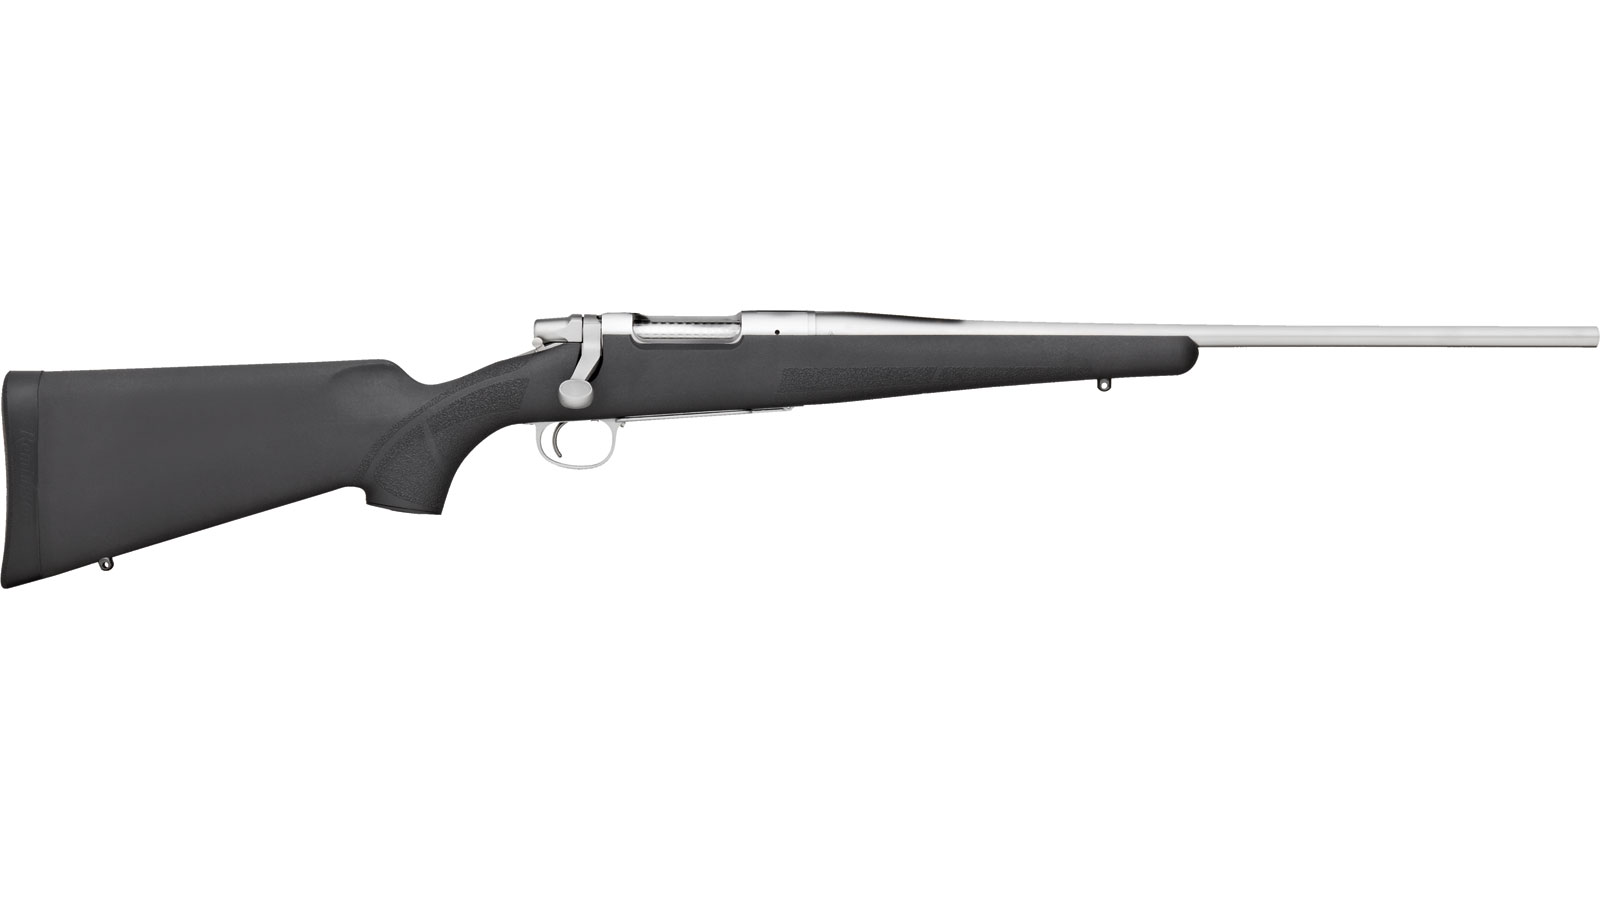 Remington Firearms 85907 Seven Stainless Bolt 6mm Remington 20 4+1 Synthetic Black Stk Stainless in.